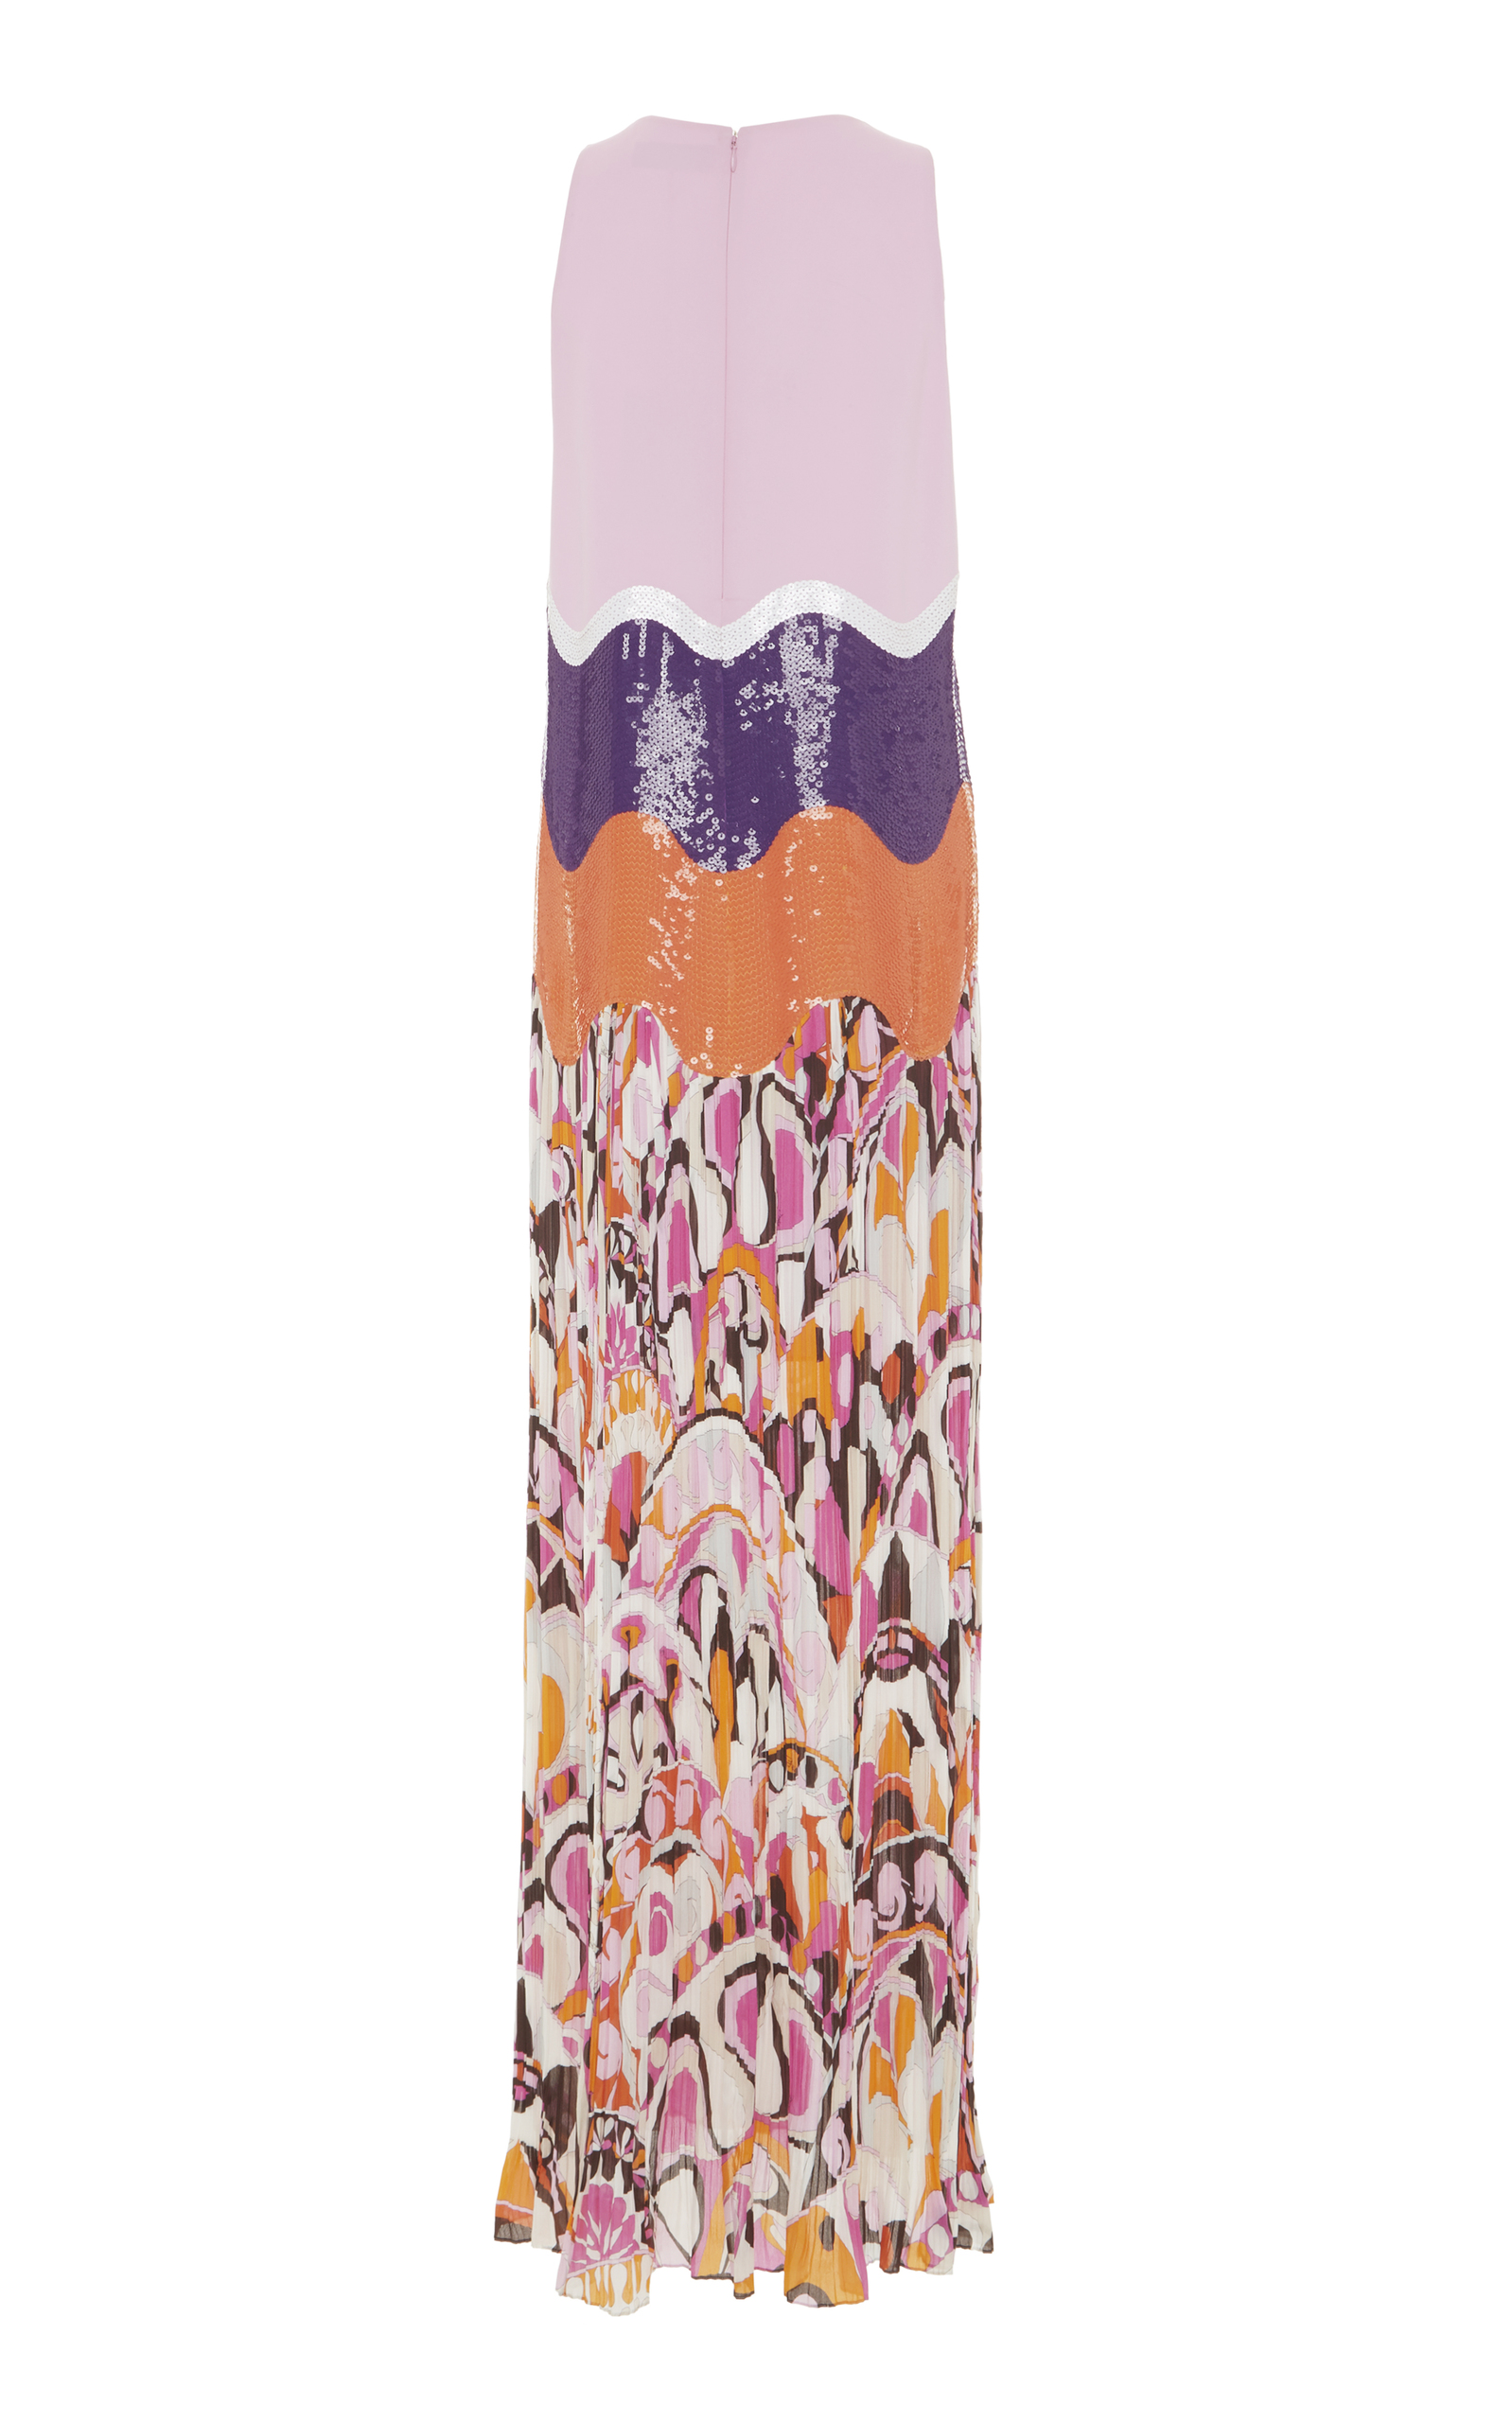 Sequin Embroidered Full Length Dress Emilio Pucci Gt35E